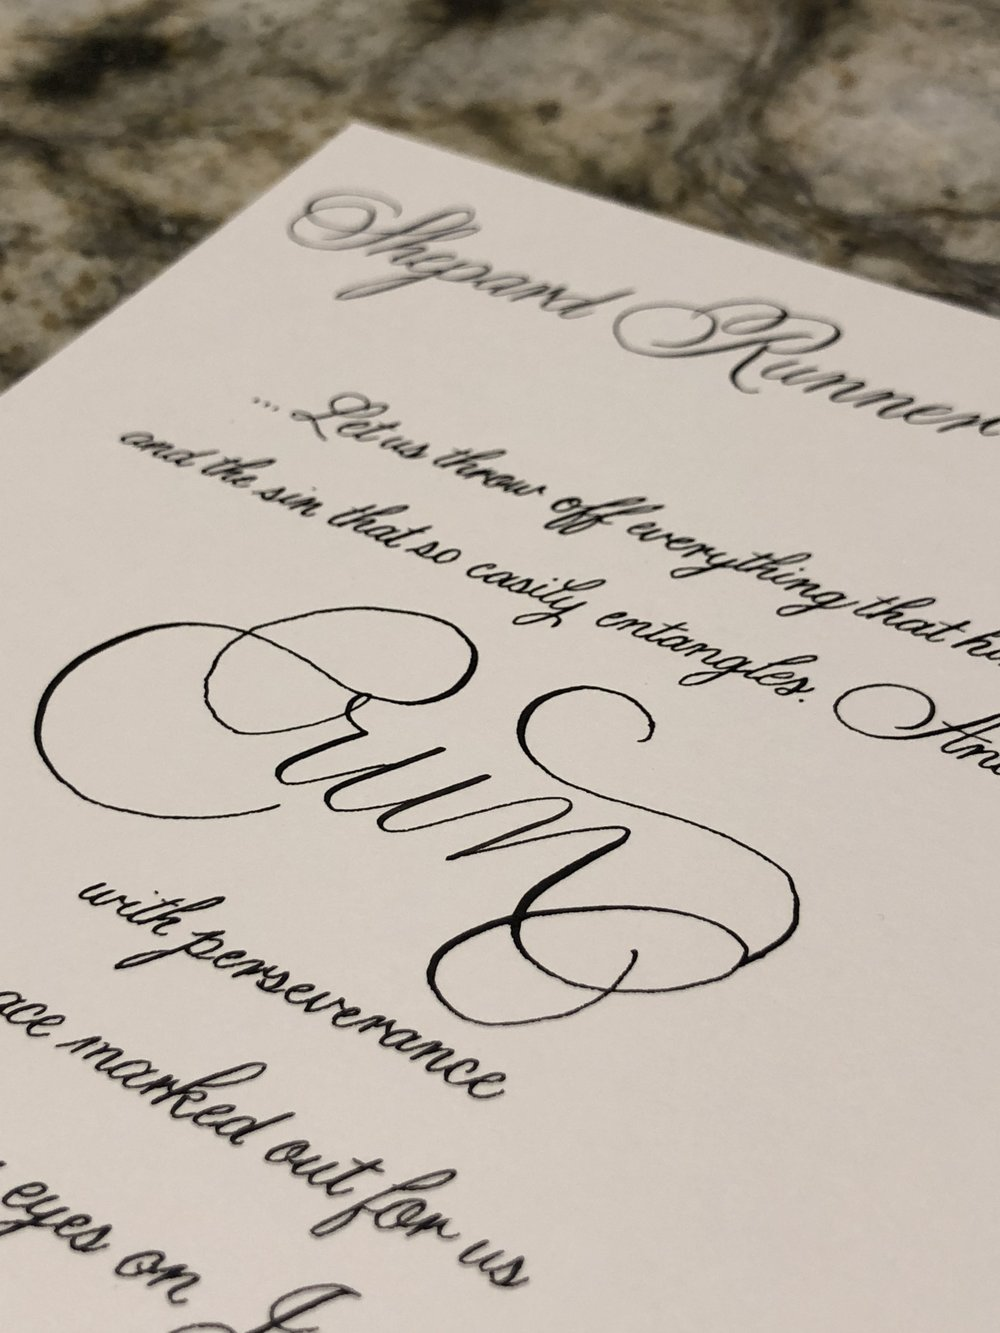 Central PA, York PA, JesSmith Designs, custom, wedding, invitations, bridal, Harrisburg, hanover, calligraphy, baltimore, wedding invitations, lancaster, gettysburg, 06-27 20.00.23.jpg